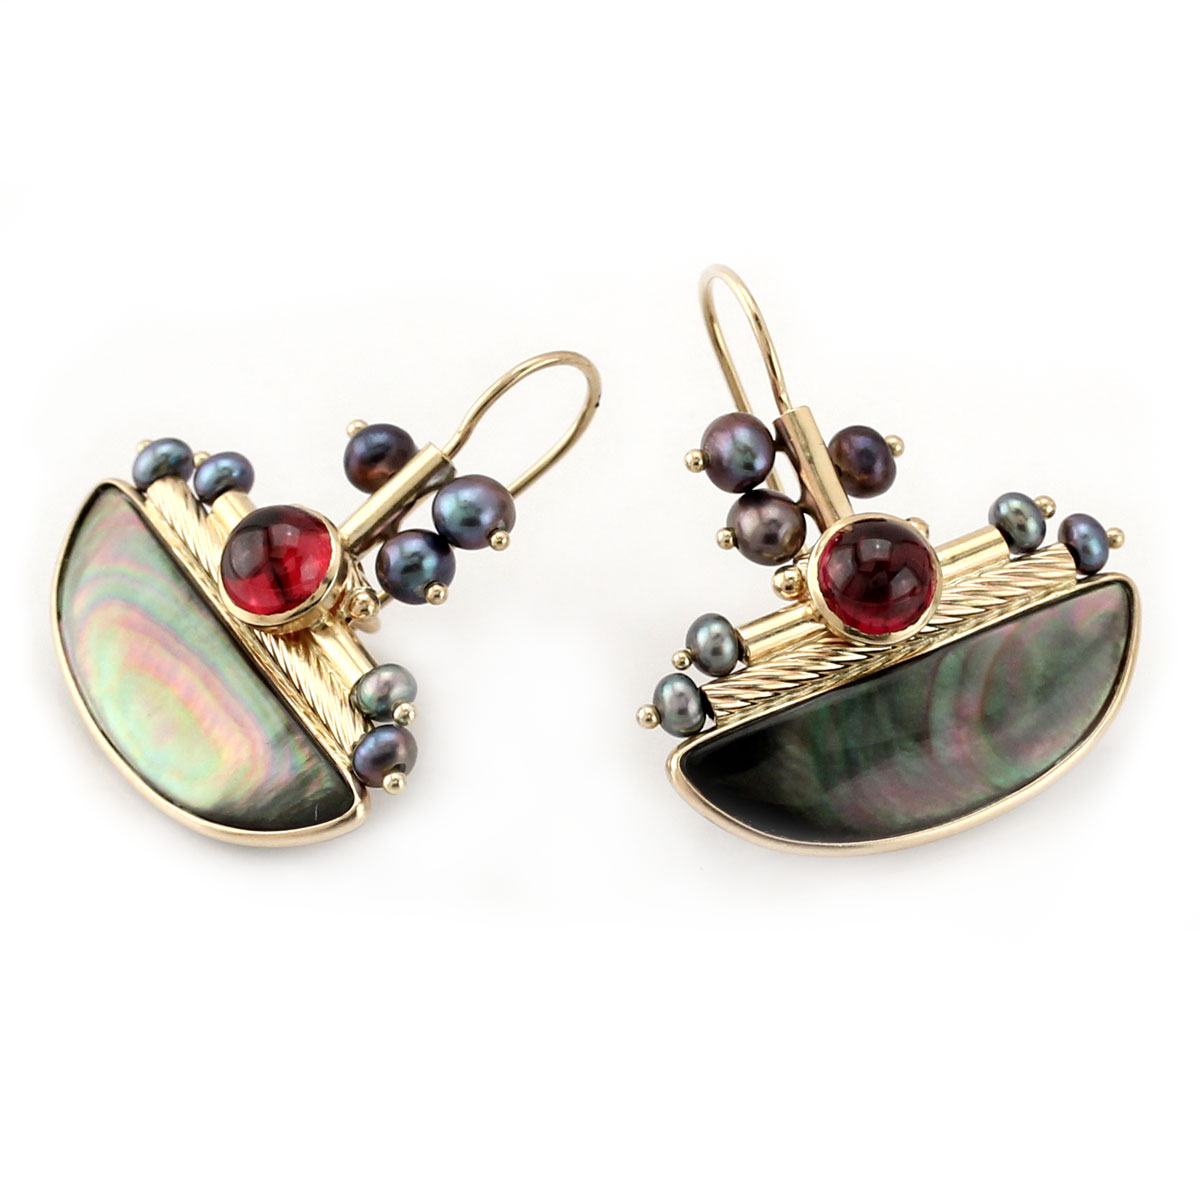 269124-Donna Chambers 14K & Half Round Black Mother of Pearl Earrings